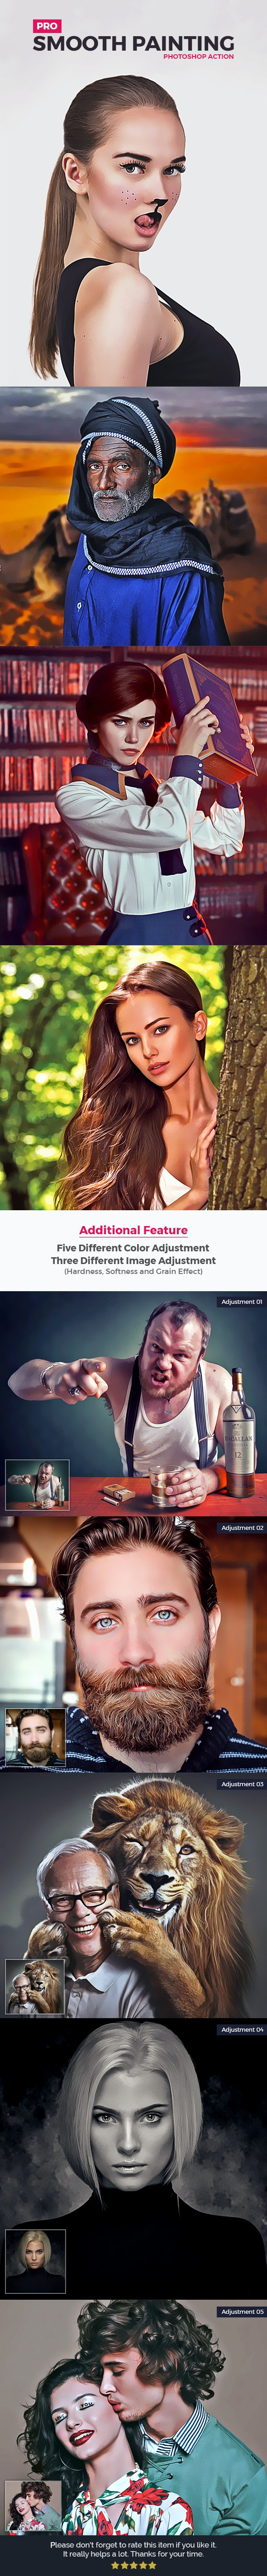 Pro Smooth Painting - Photo Effects Actions